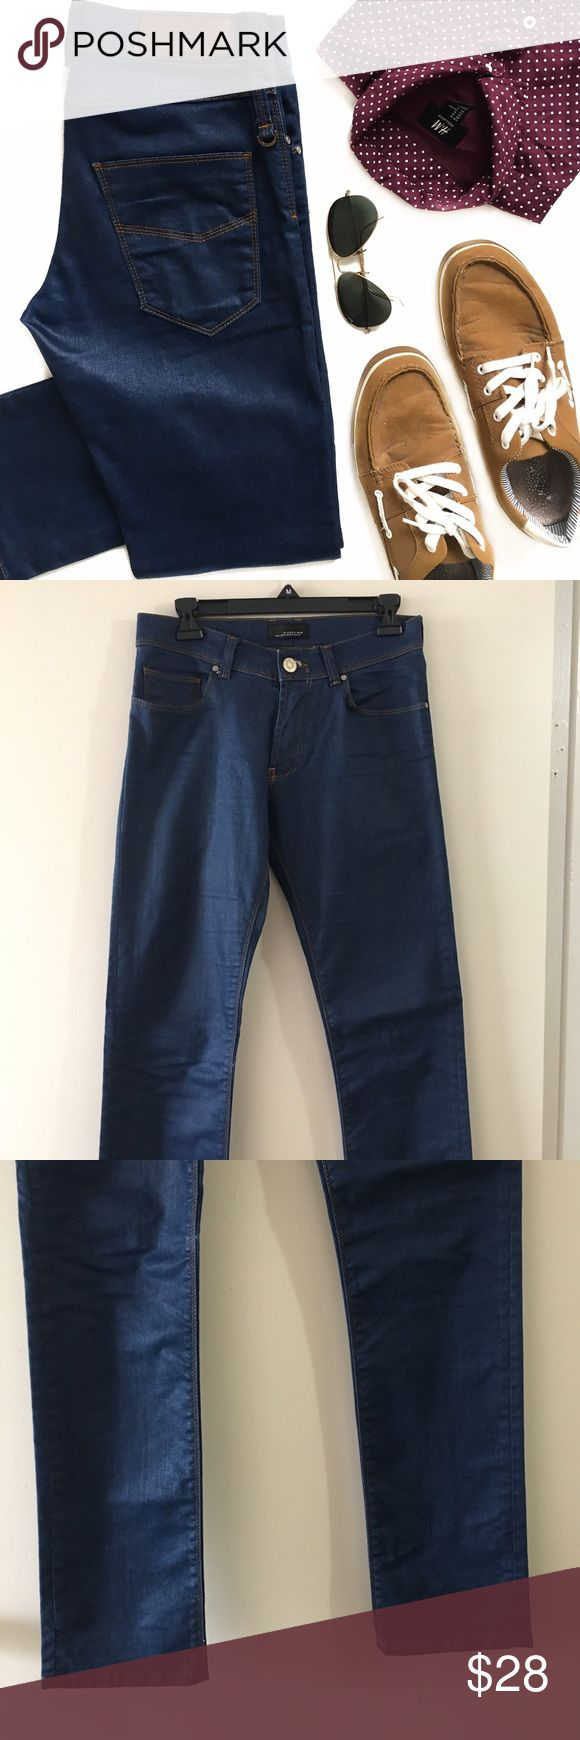 Zara Black Tag Blue Skinny Jeans Excellent condition, like new. Five pocket construction, Zip/button closure. 91% cotton, 7% polyester, 2% elastane. Zara Jeans Skinny